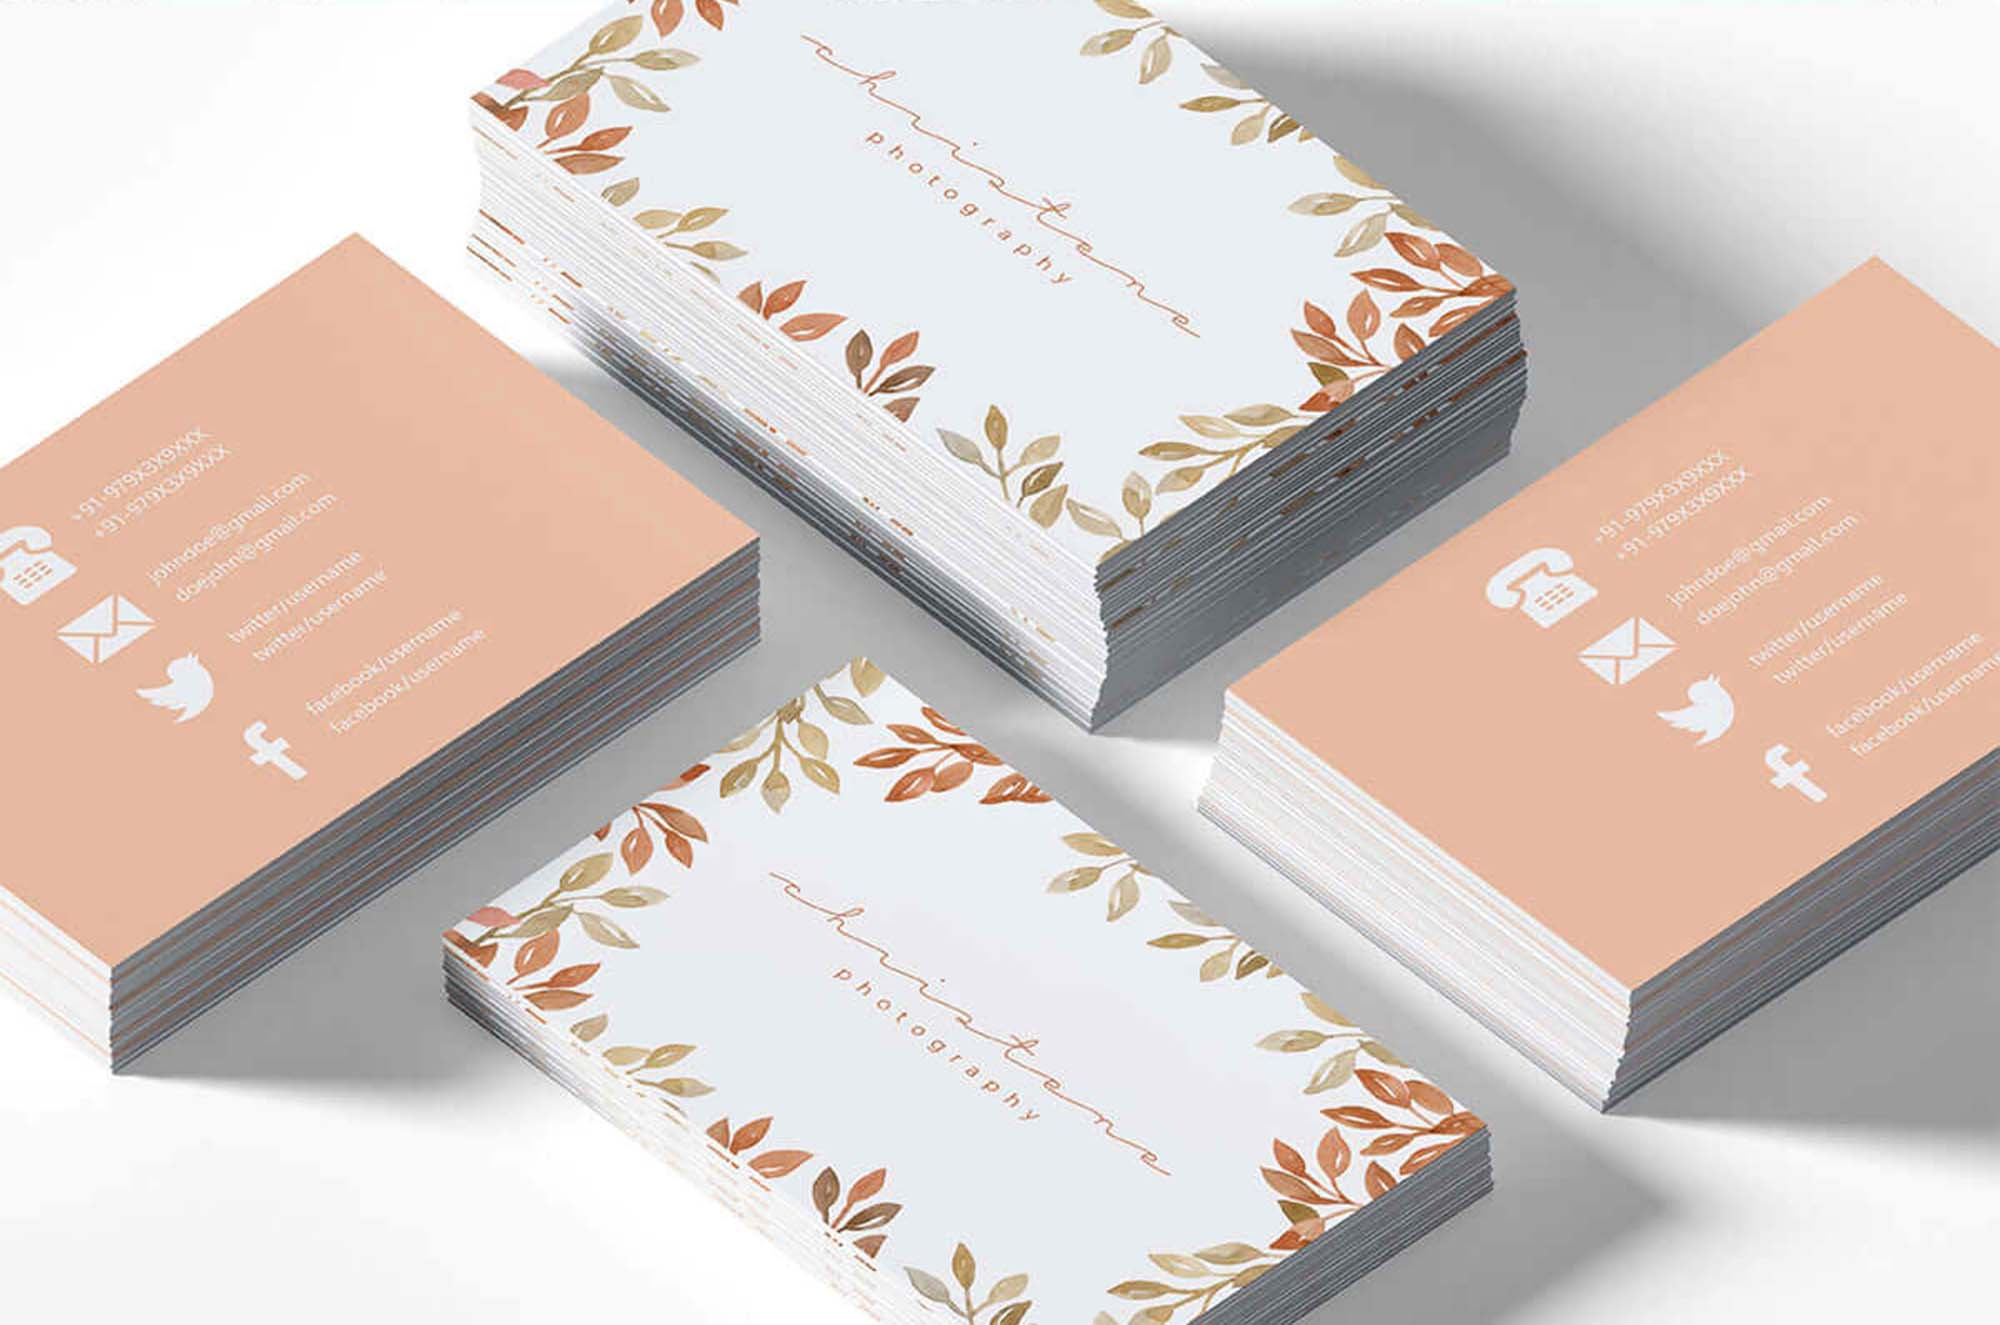 Floral Photography Business Card Template